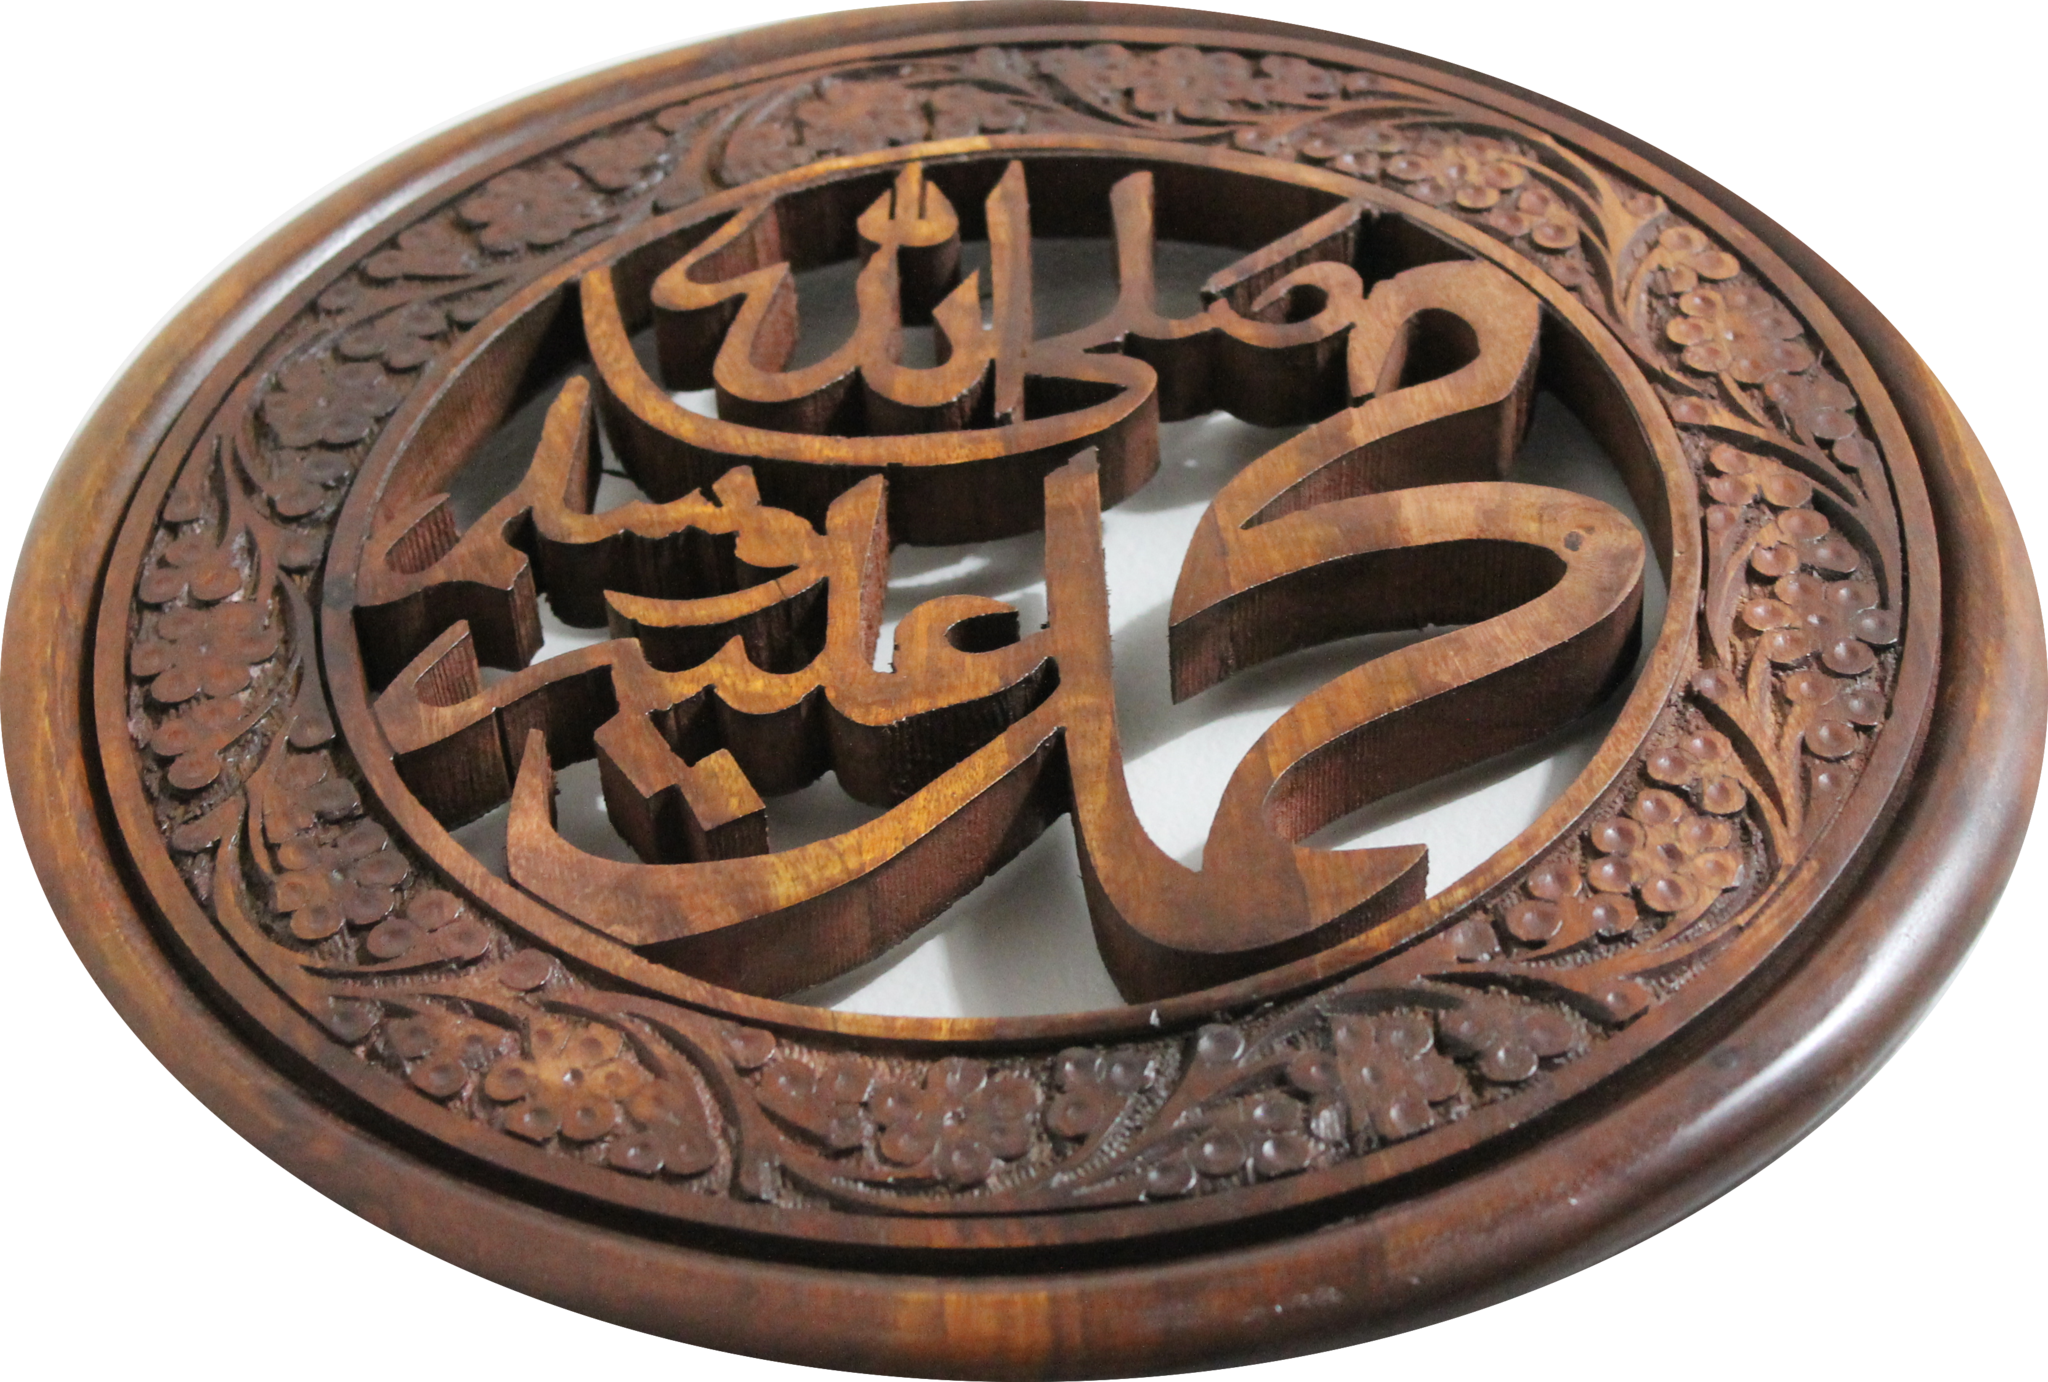 Superb Hand Carved Islamic Wall Art Allah S W T And Muhammad S A W Pair On Solid Wooden Circular Design 12